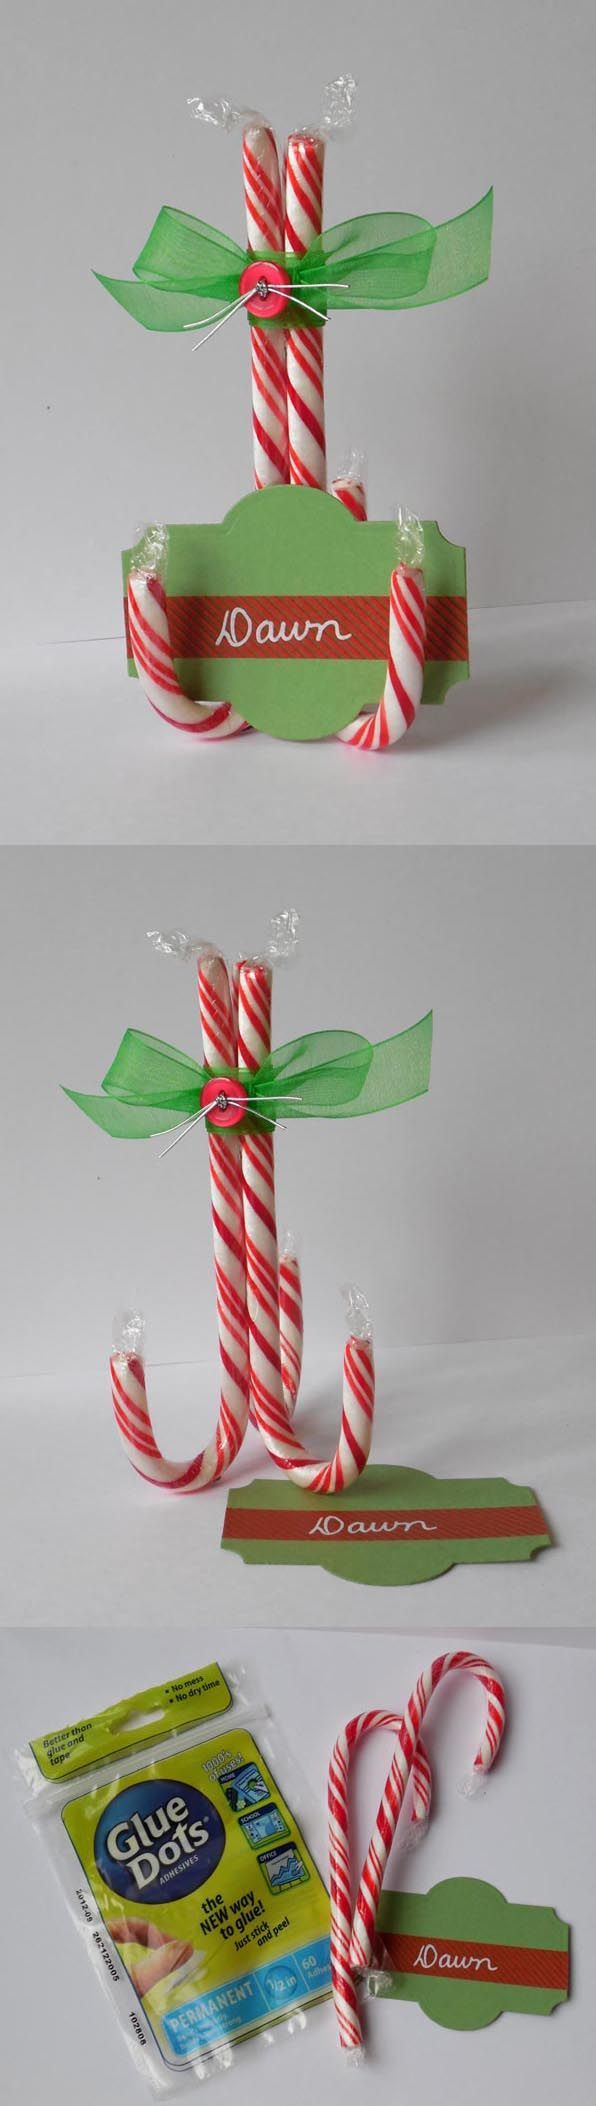 Candy canes + Ribbon + Permanent #GlueDots = Candy Cane Place Card holders! Add a sweet treat to your holiday table this year!